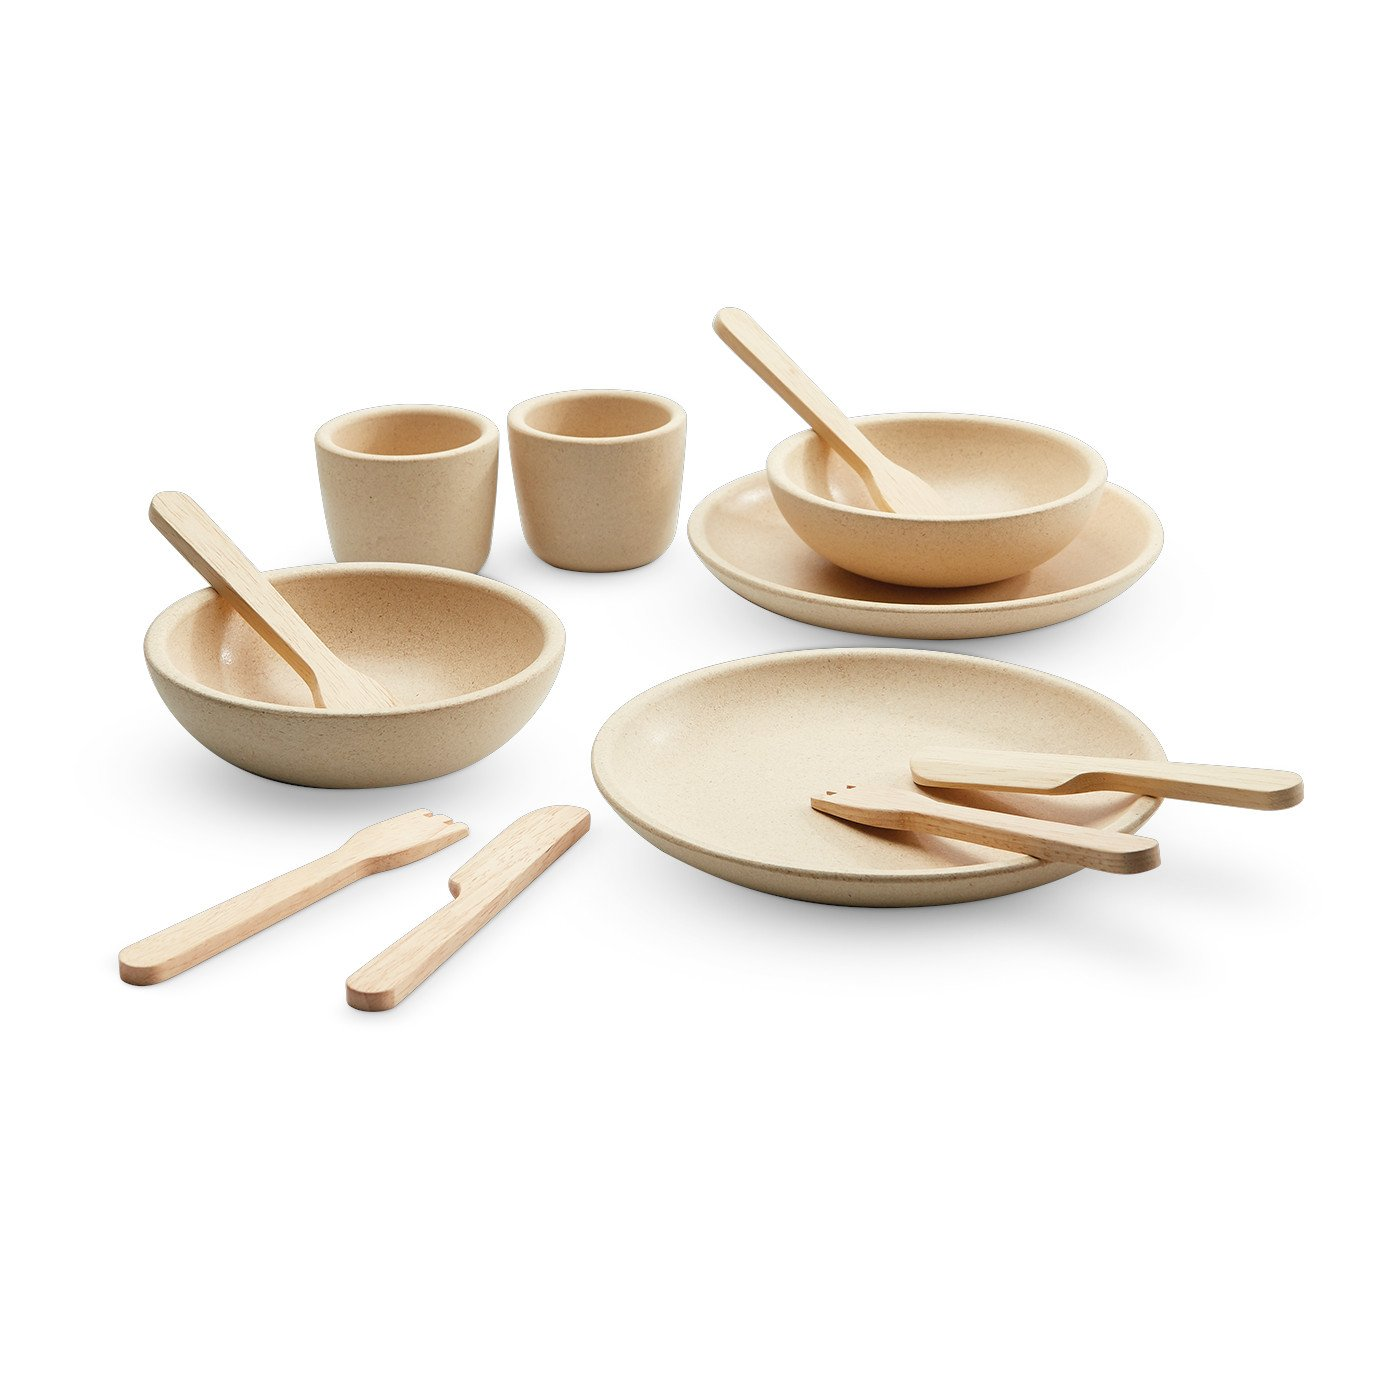 Plan Toys Tableware Set PlanToys Pretend Play at Little Earth Nest Eco Shop